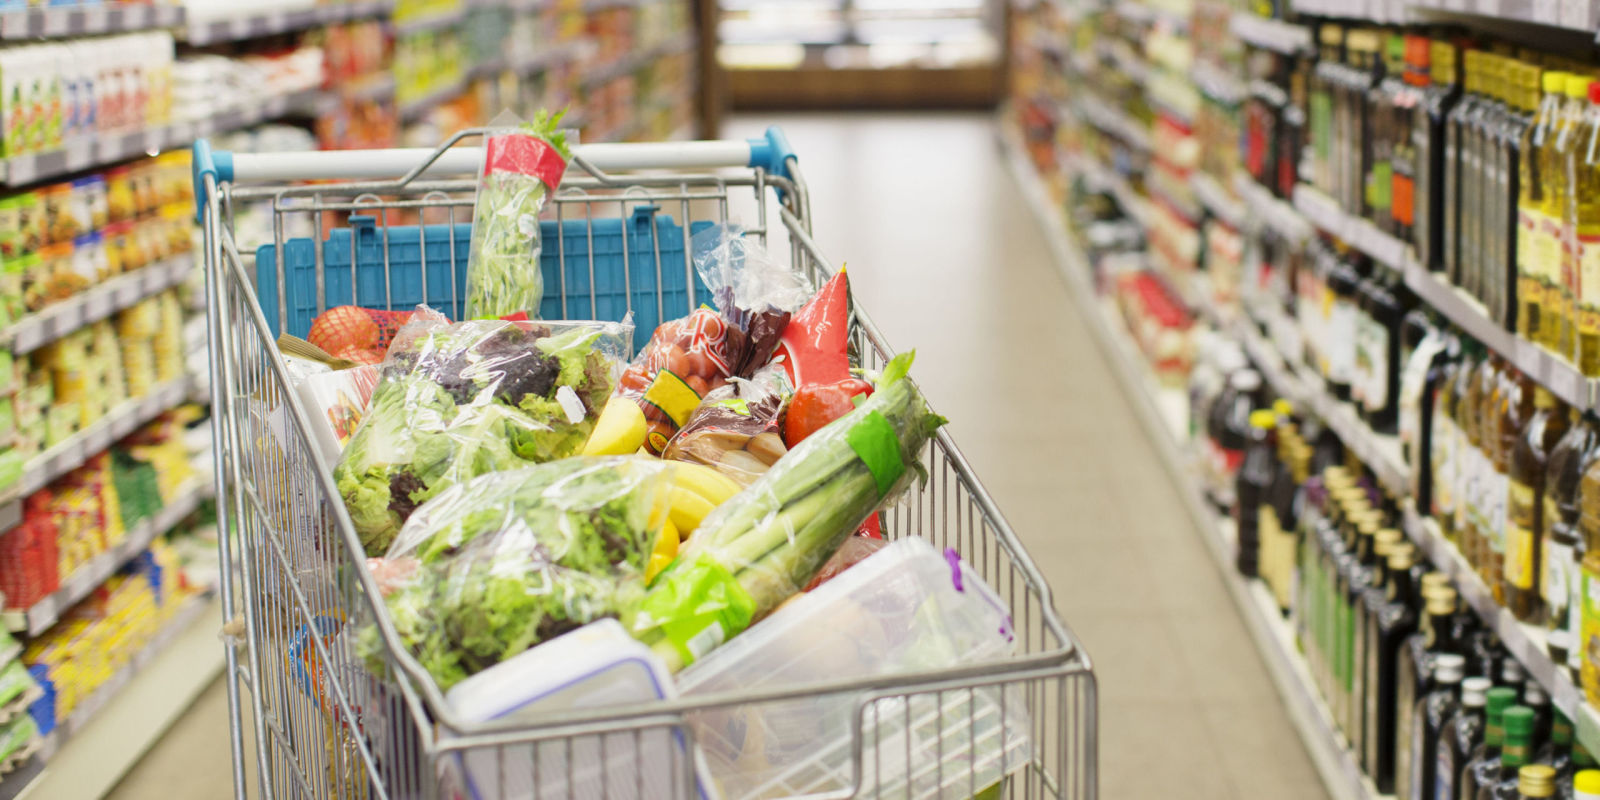 Remodeling A House Where To Start 13 Grocery Shopping Tricks From Moms With Big Families